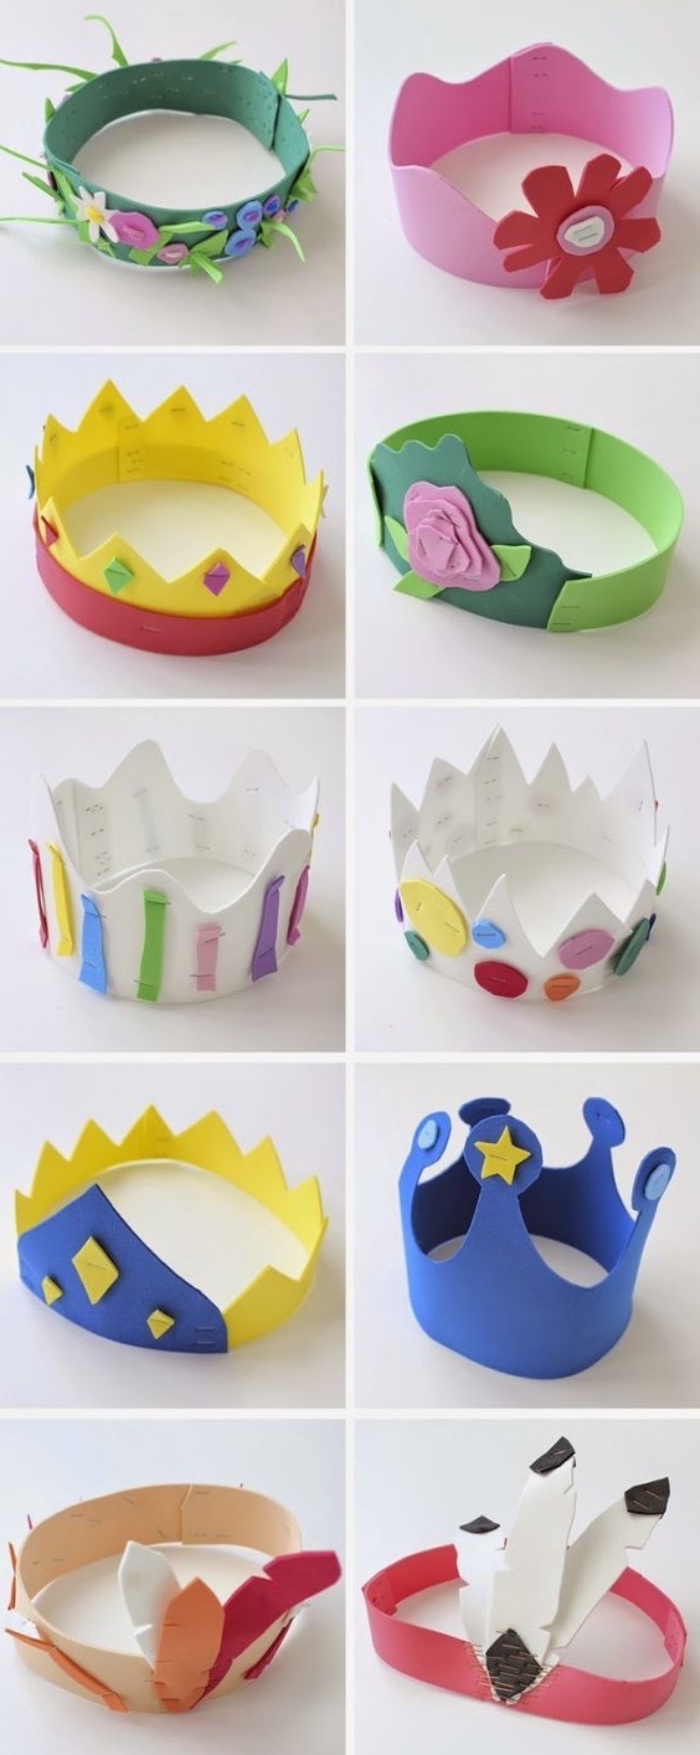 activities for 4 year olds, side by side photos, of different paper crown, for boys and girls